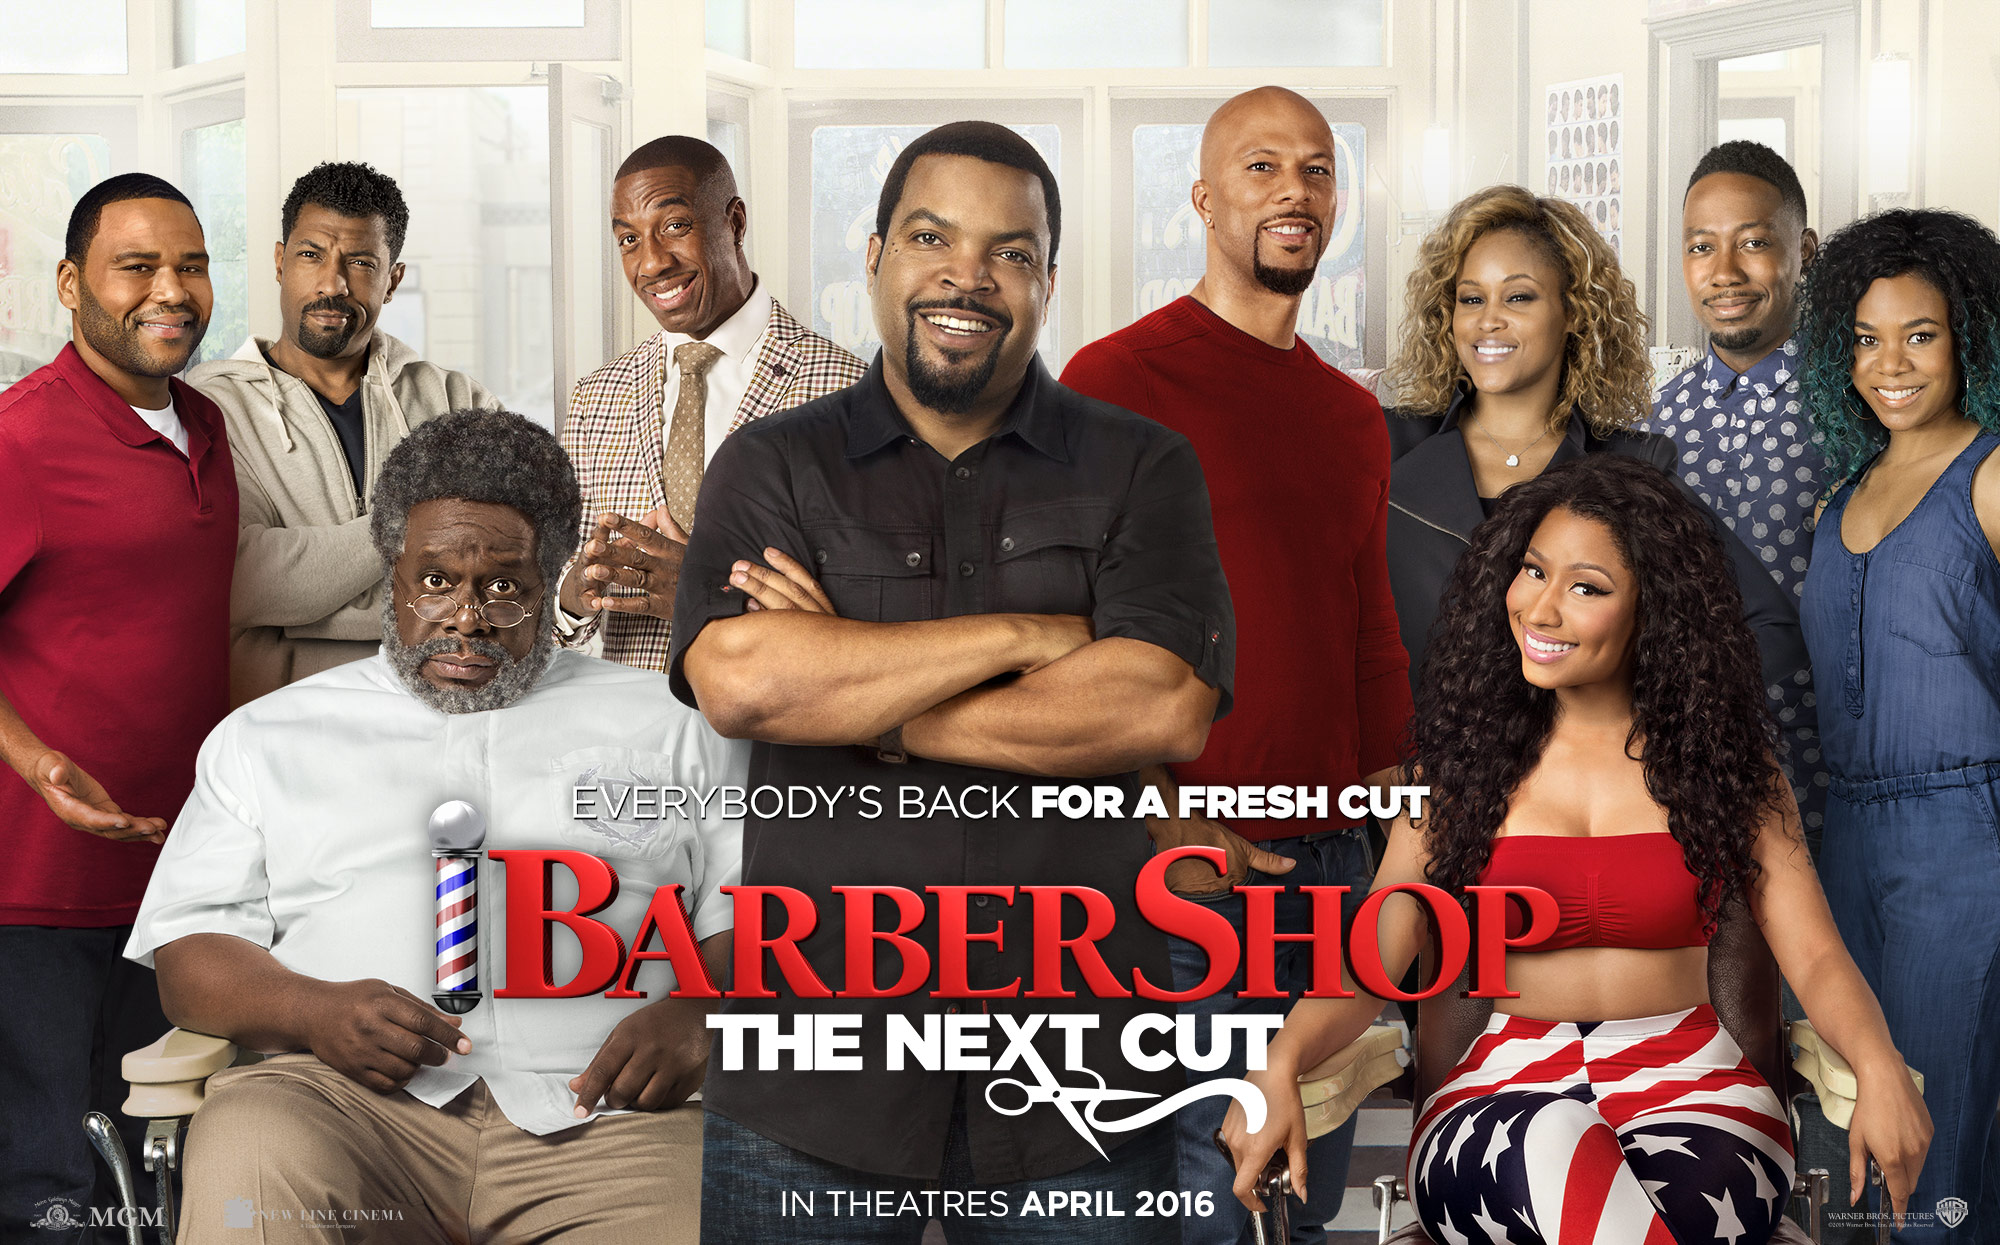 Barbershop Film